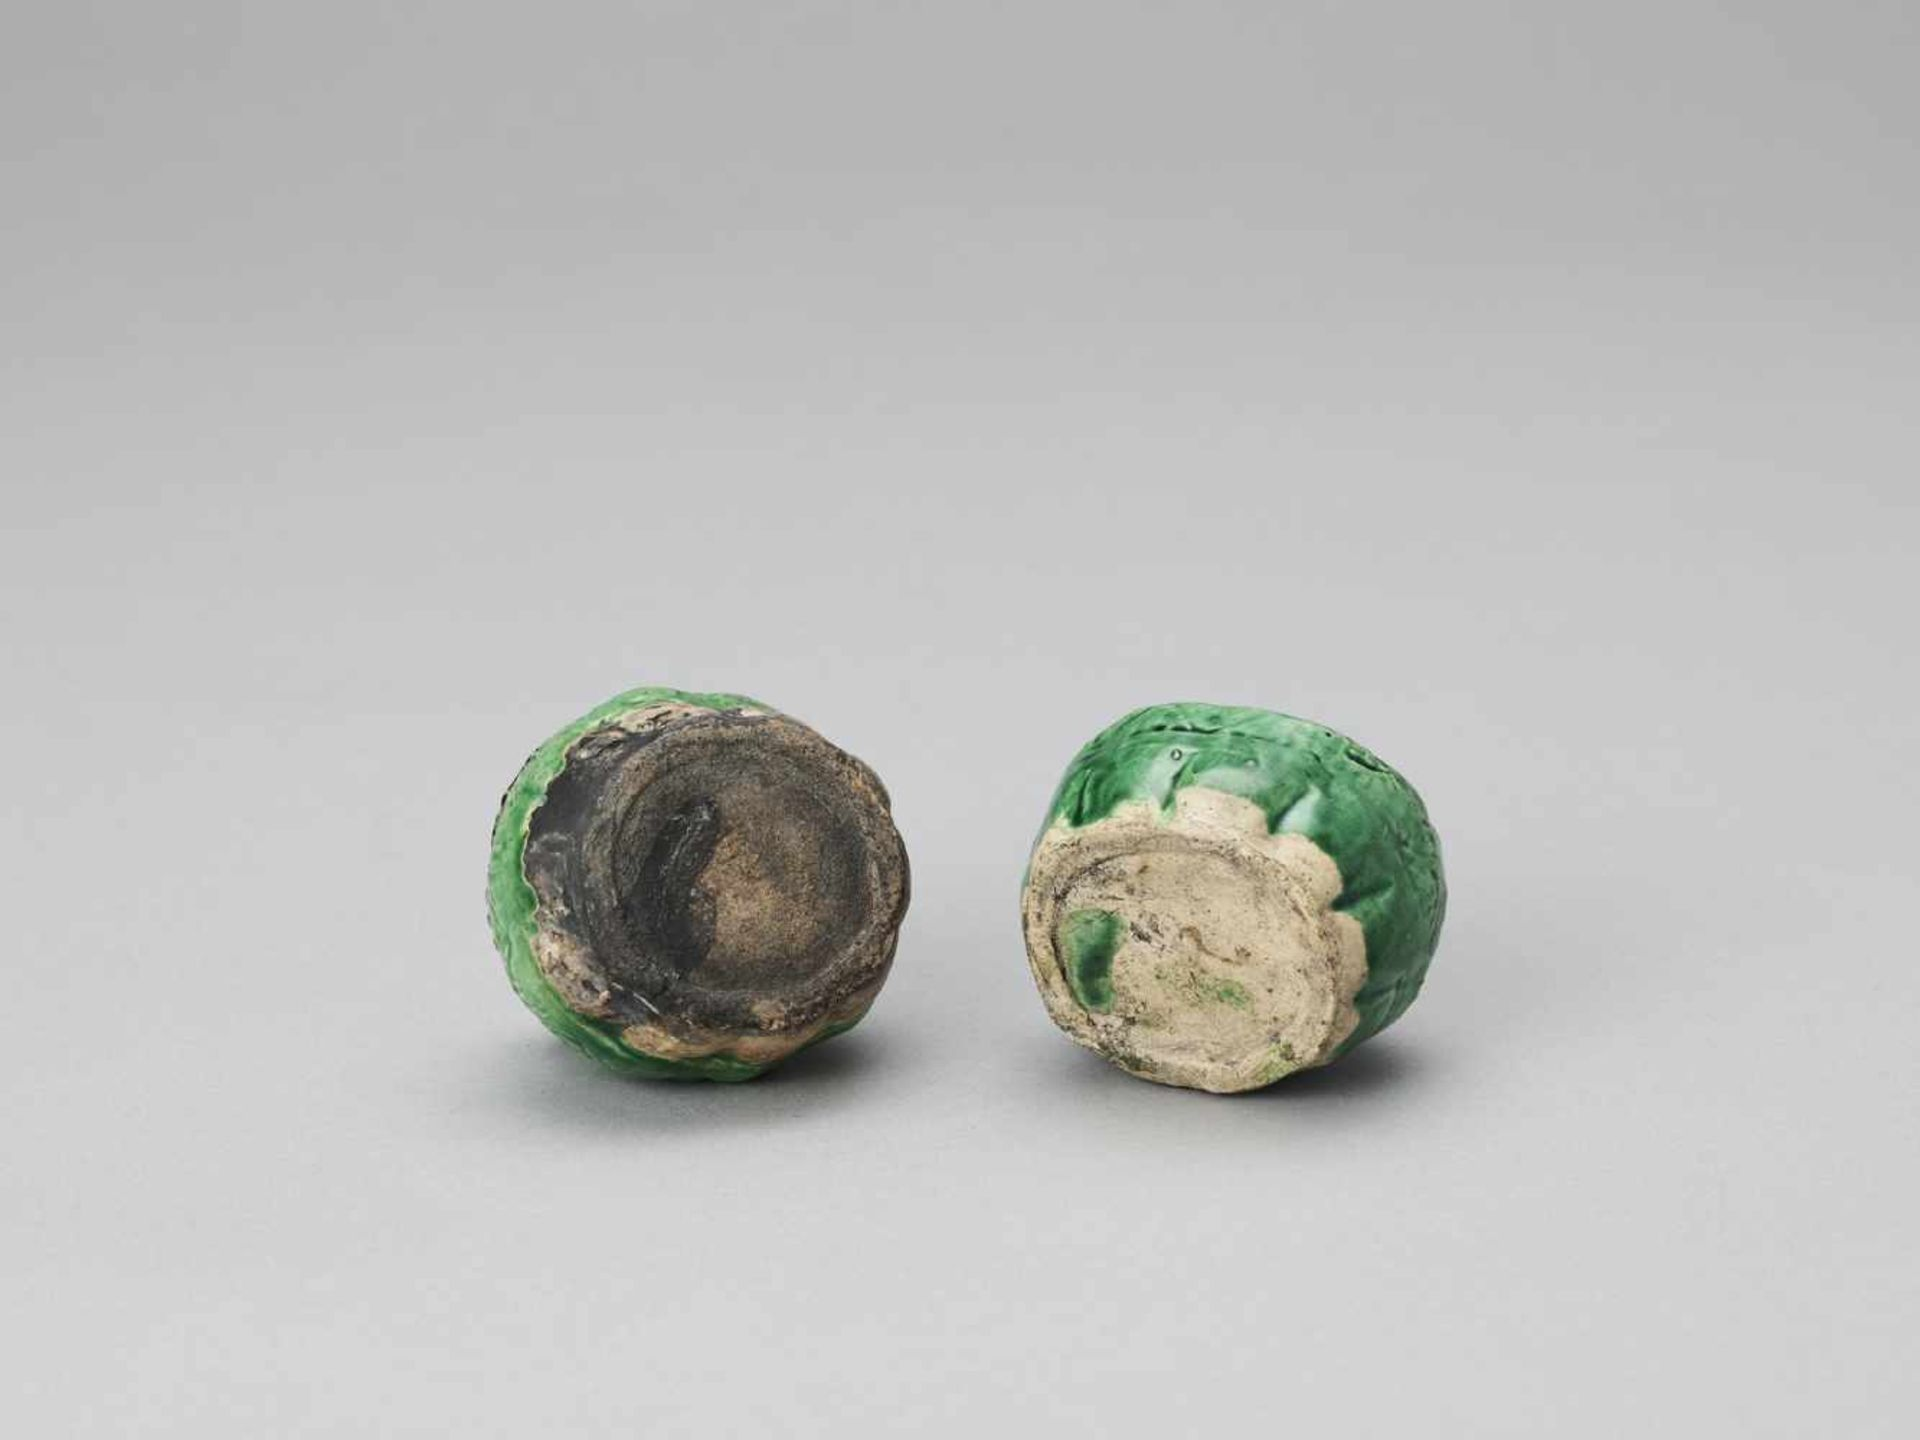 Los 429 - A PAIR OF EMERALD GREEN GLAZED POTTERY BUDDHIST LION WATER DROPPERS, KANGXI